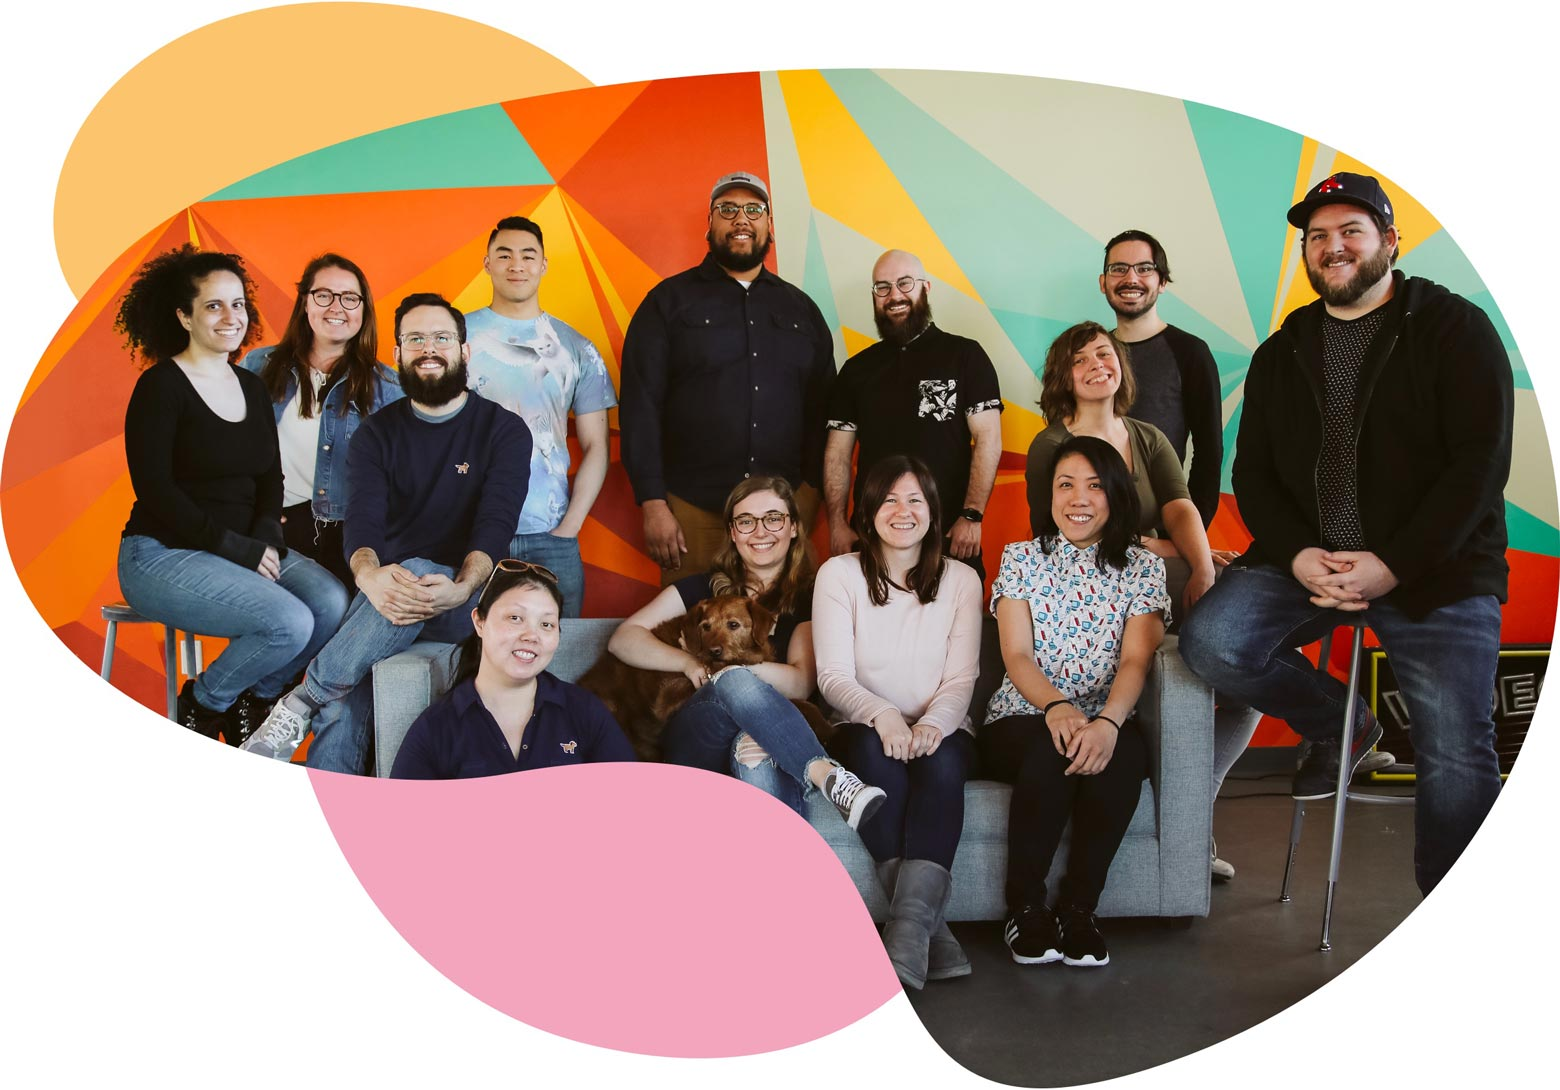 Wistia's Support Team Photo